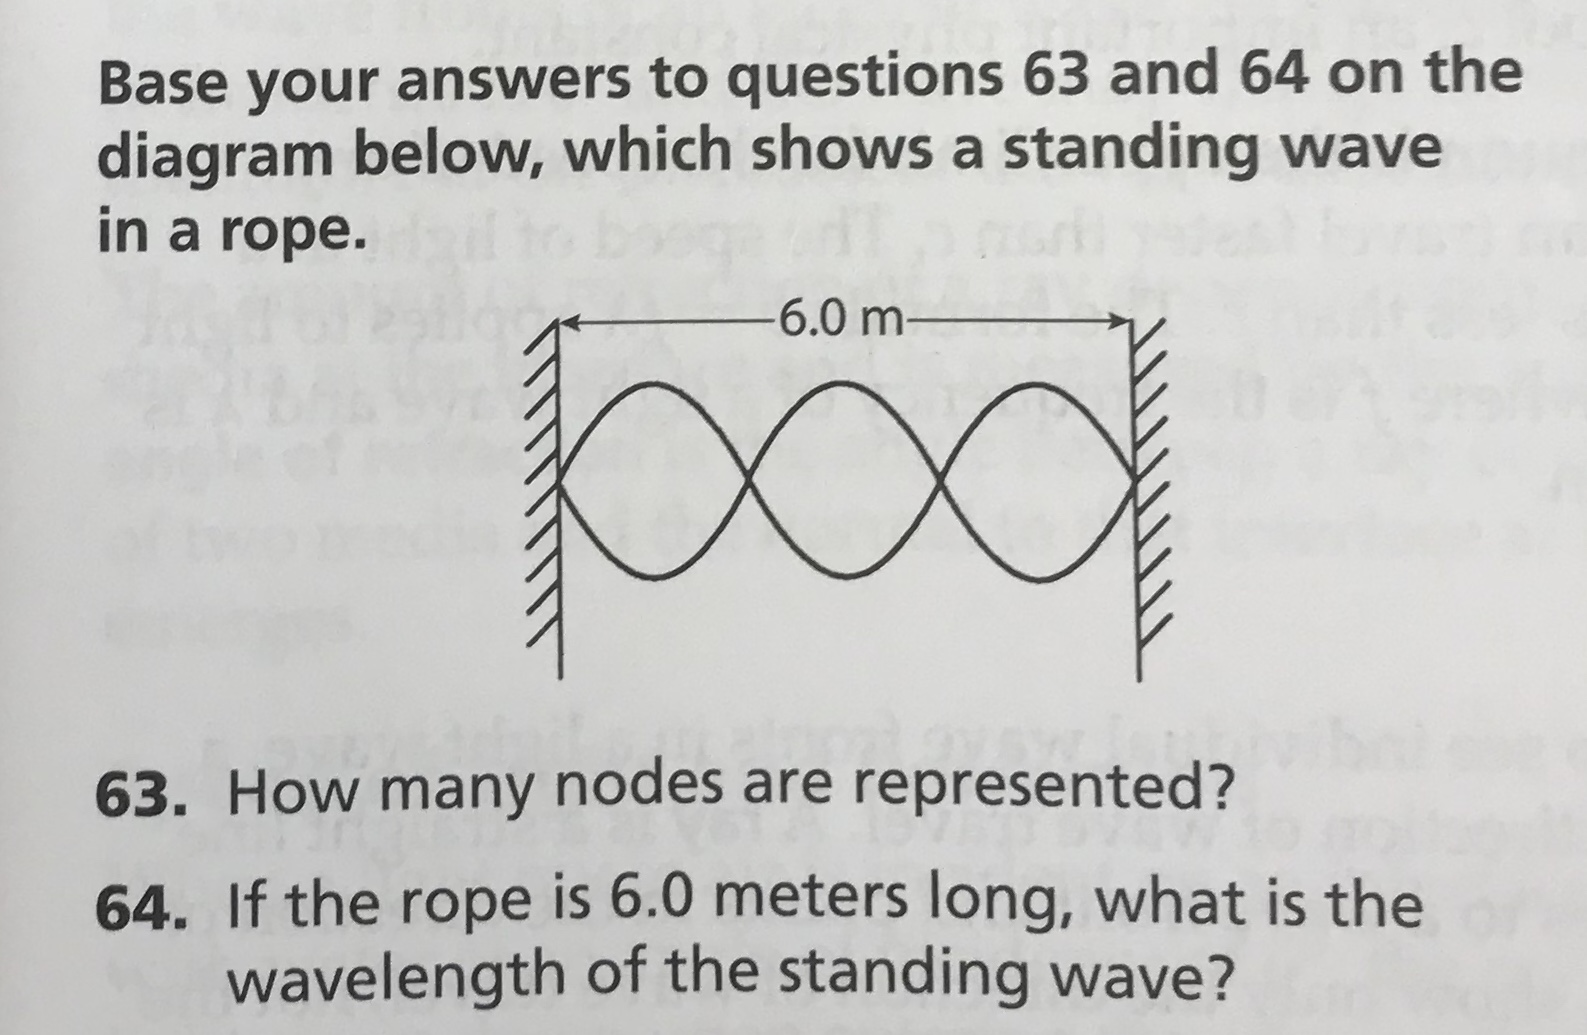 Base your answers to questions 63 and 64 on the diagram below, which shows a standing wave in a rope. pod -6.0 m- 63. How many nodes are represented? 64. If the rope is 6.0 meters long, what is the wavelength of the standing wave?